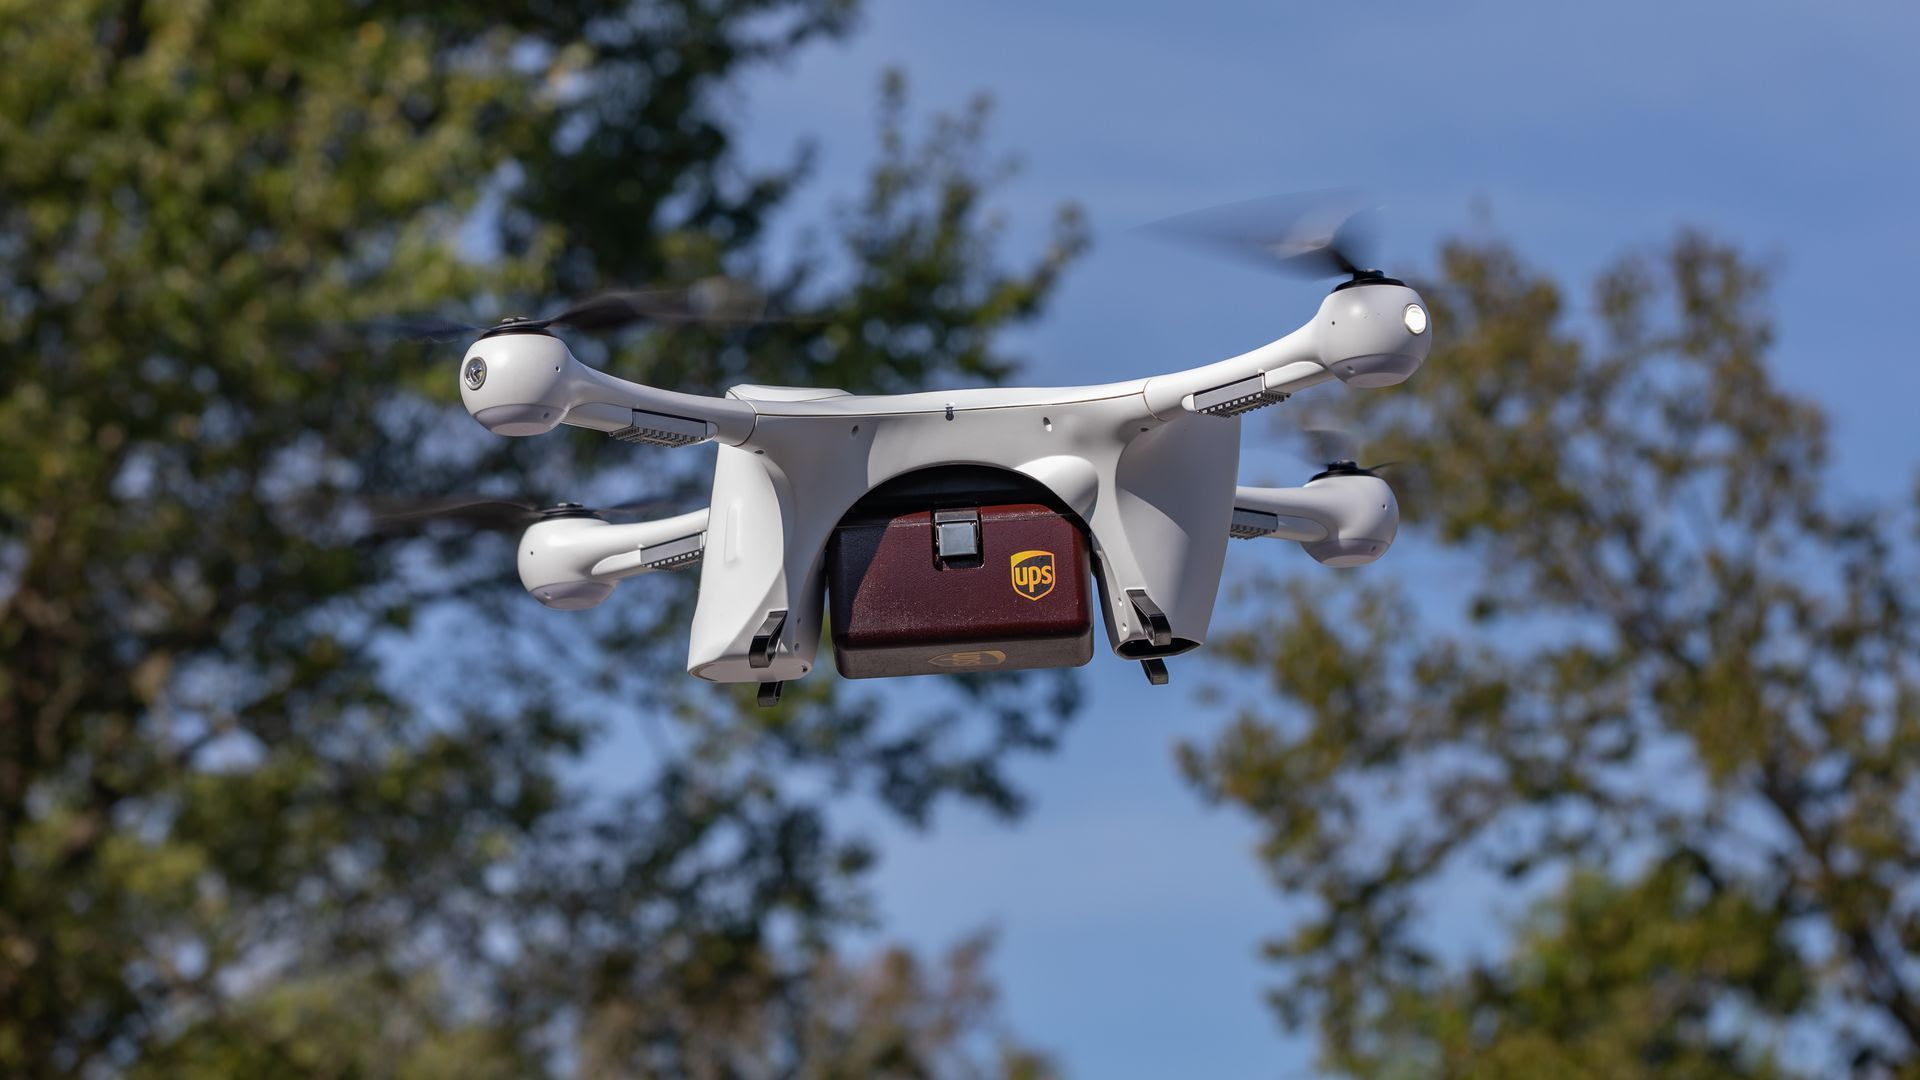 UPS becomes first U.S. company to receive approval to operate commercial drones